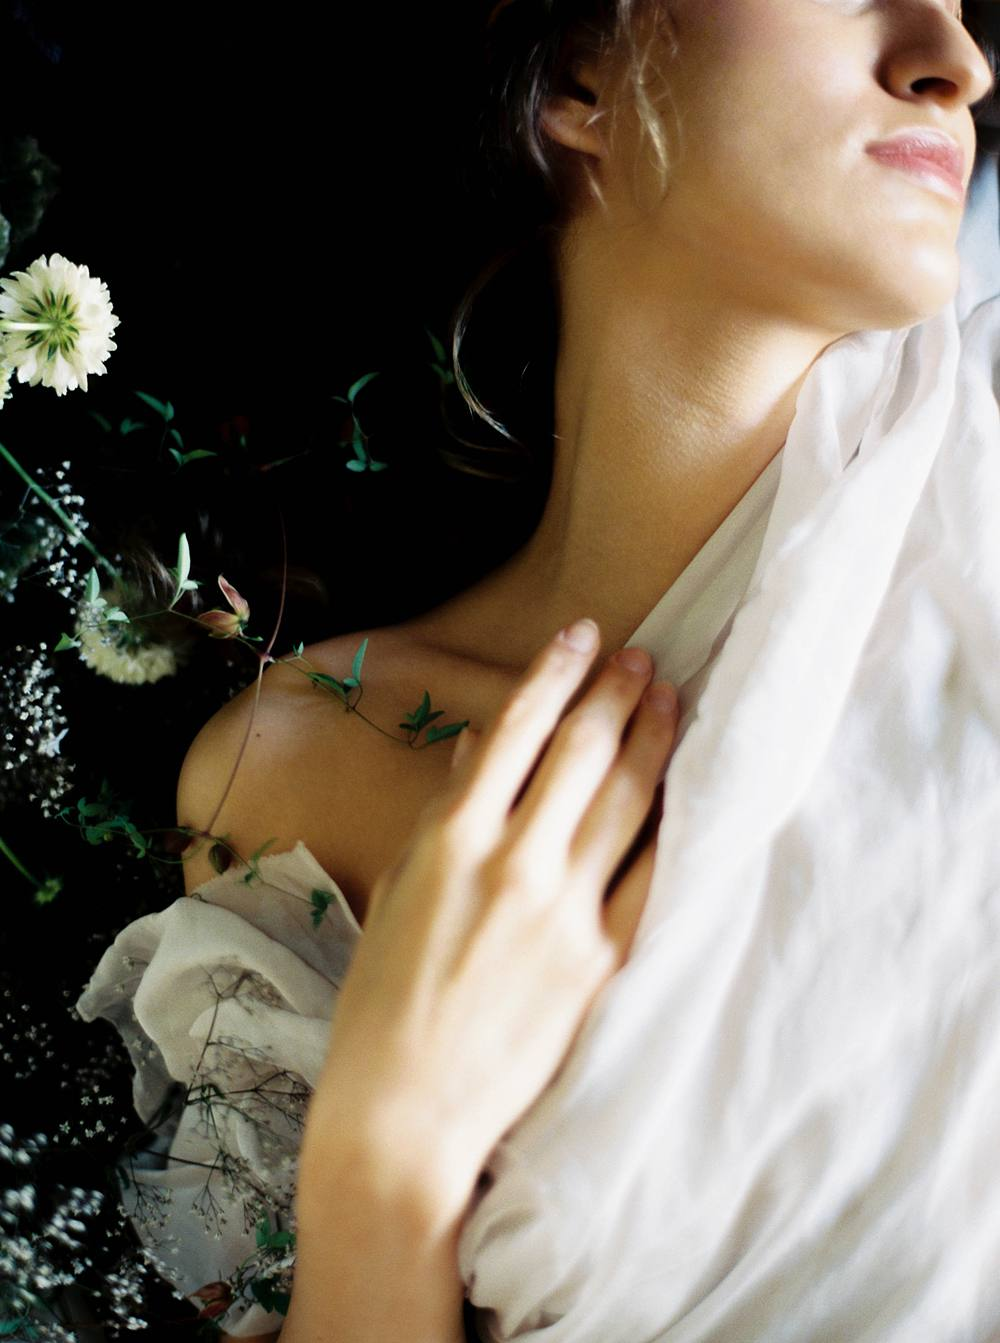 A close in crop of a boudoir session with a woman wrapped in soft fabric, touching her collar bone with her fingertips.